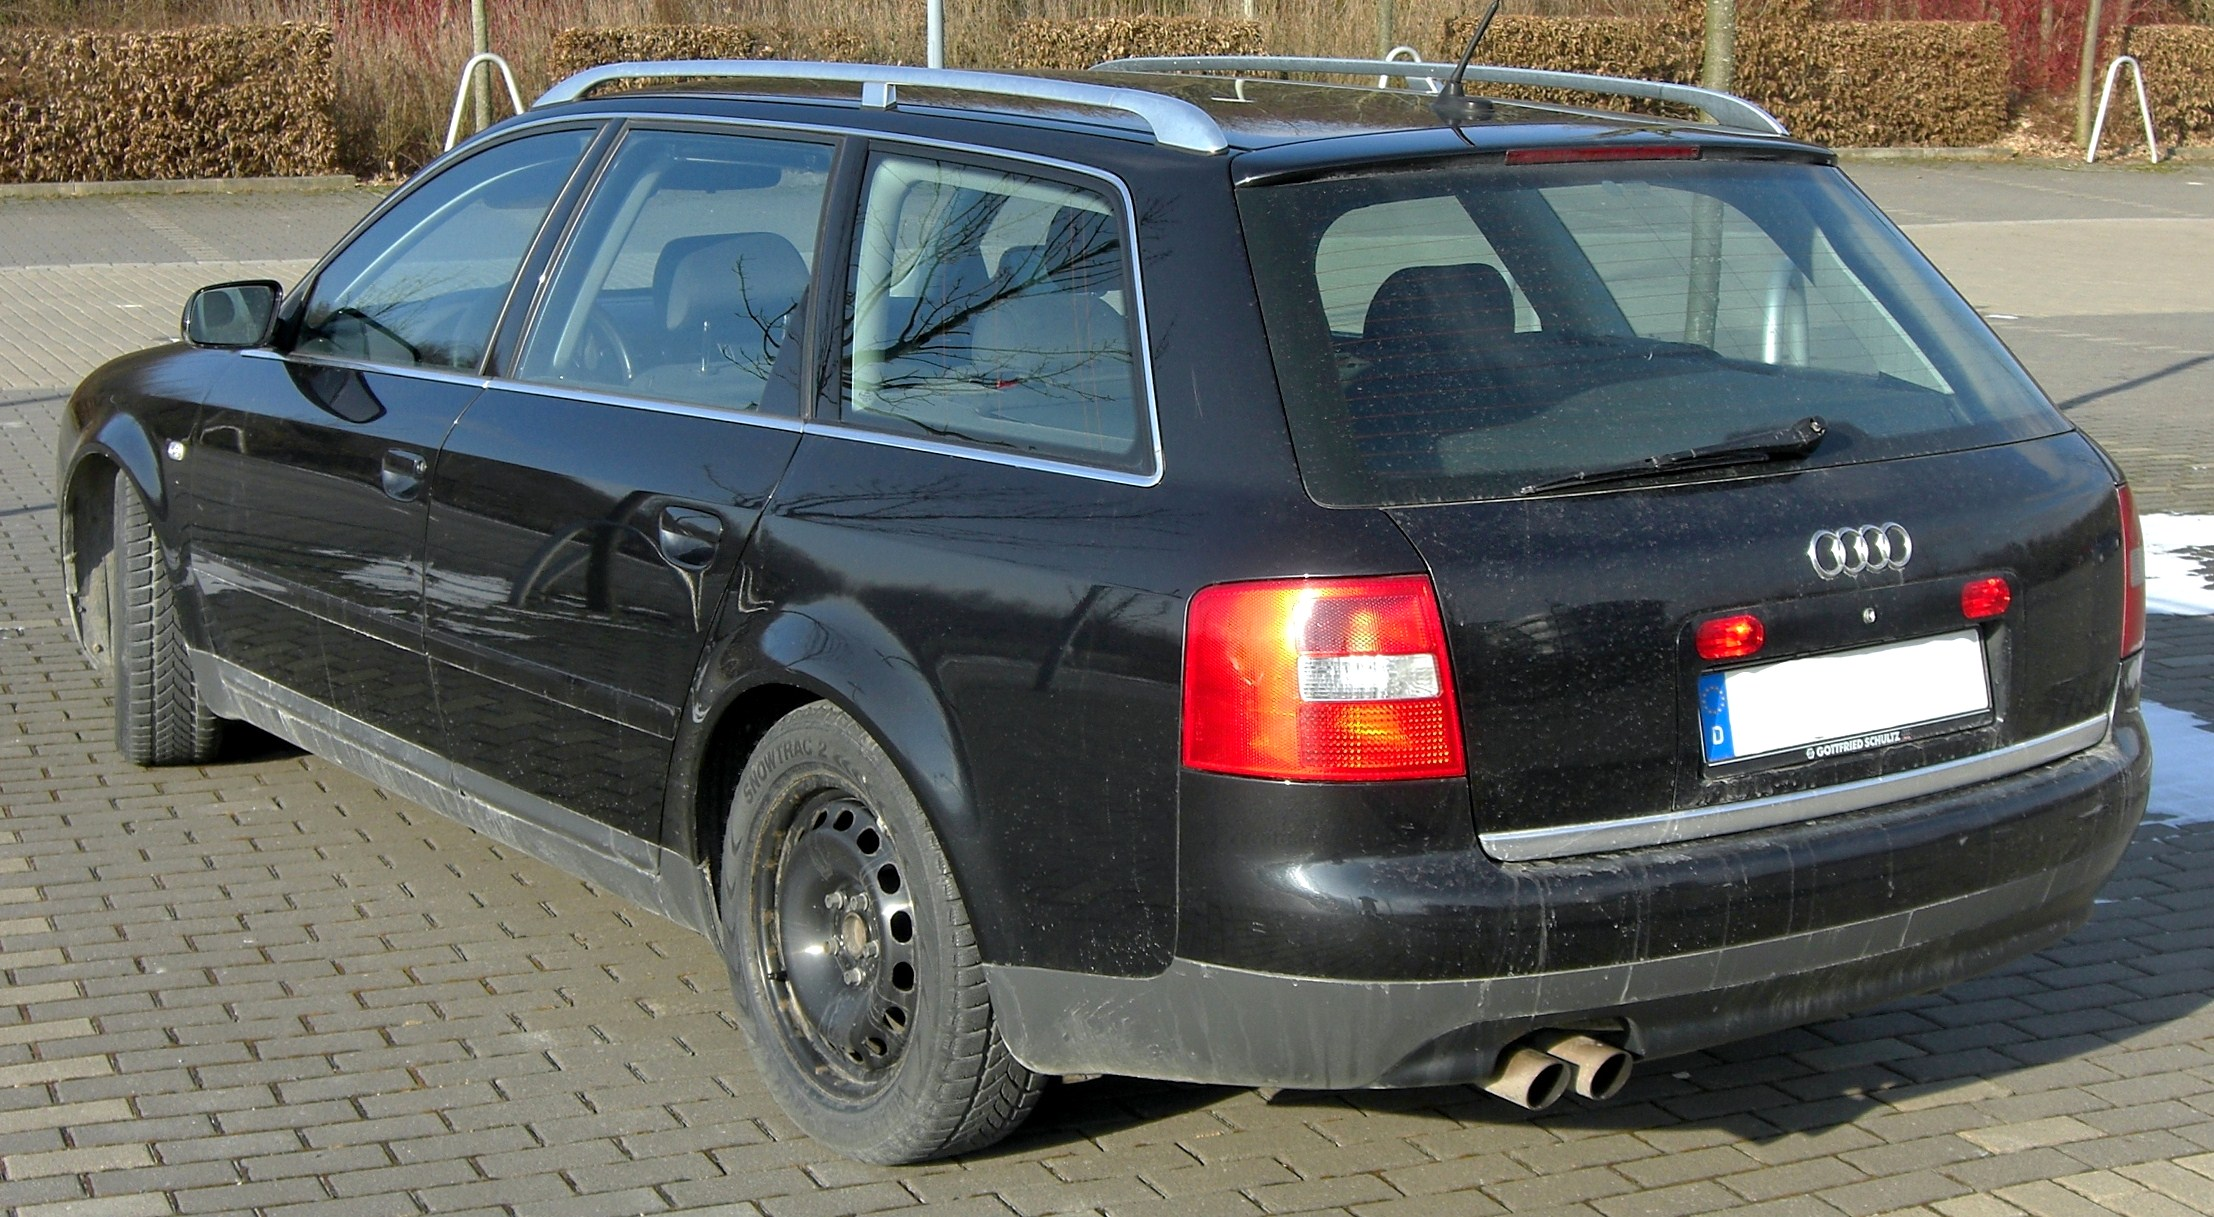 Fileaudi A6 C5 Avant Rearjpg Wikimedia Commons